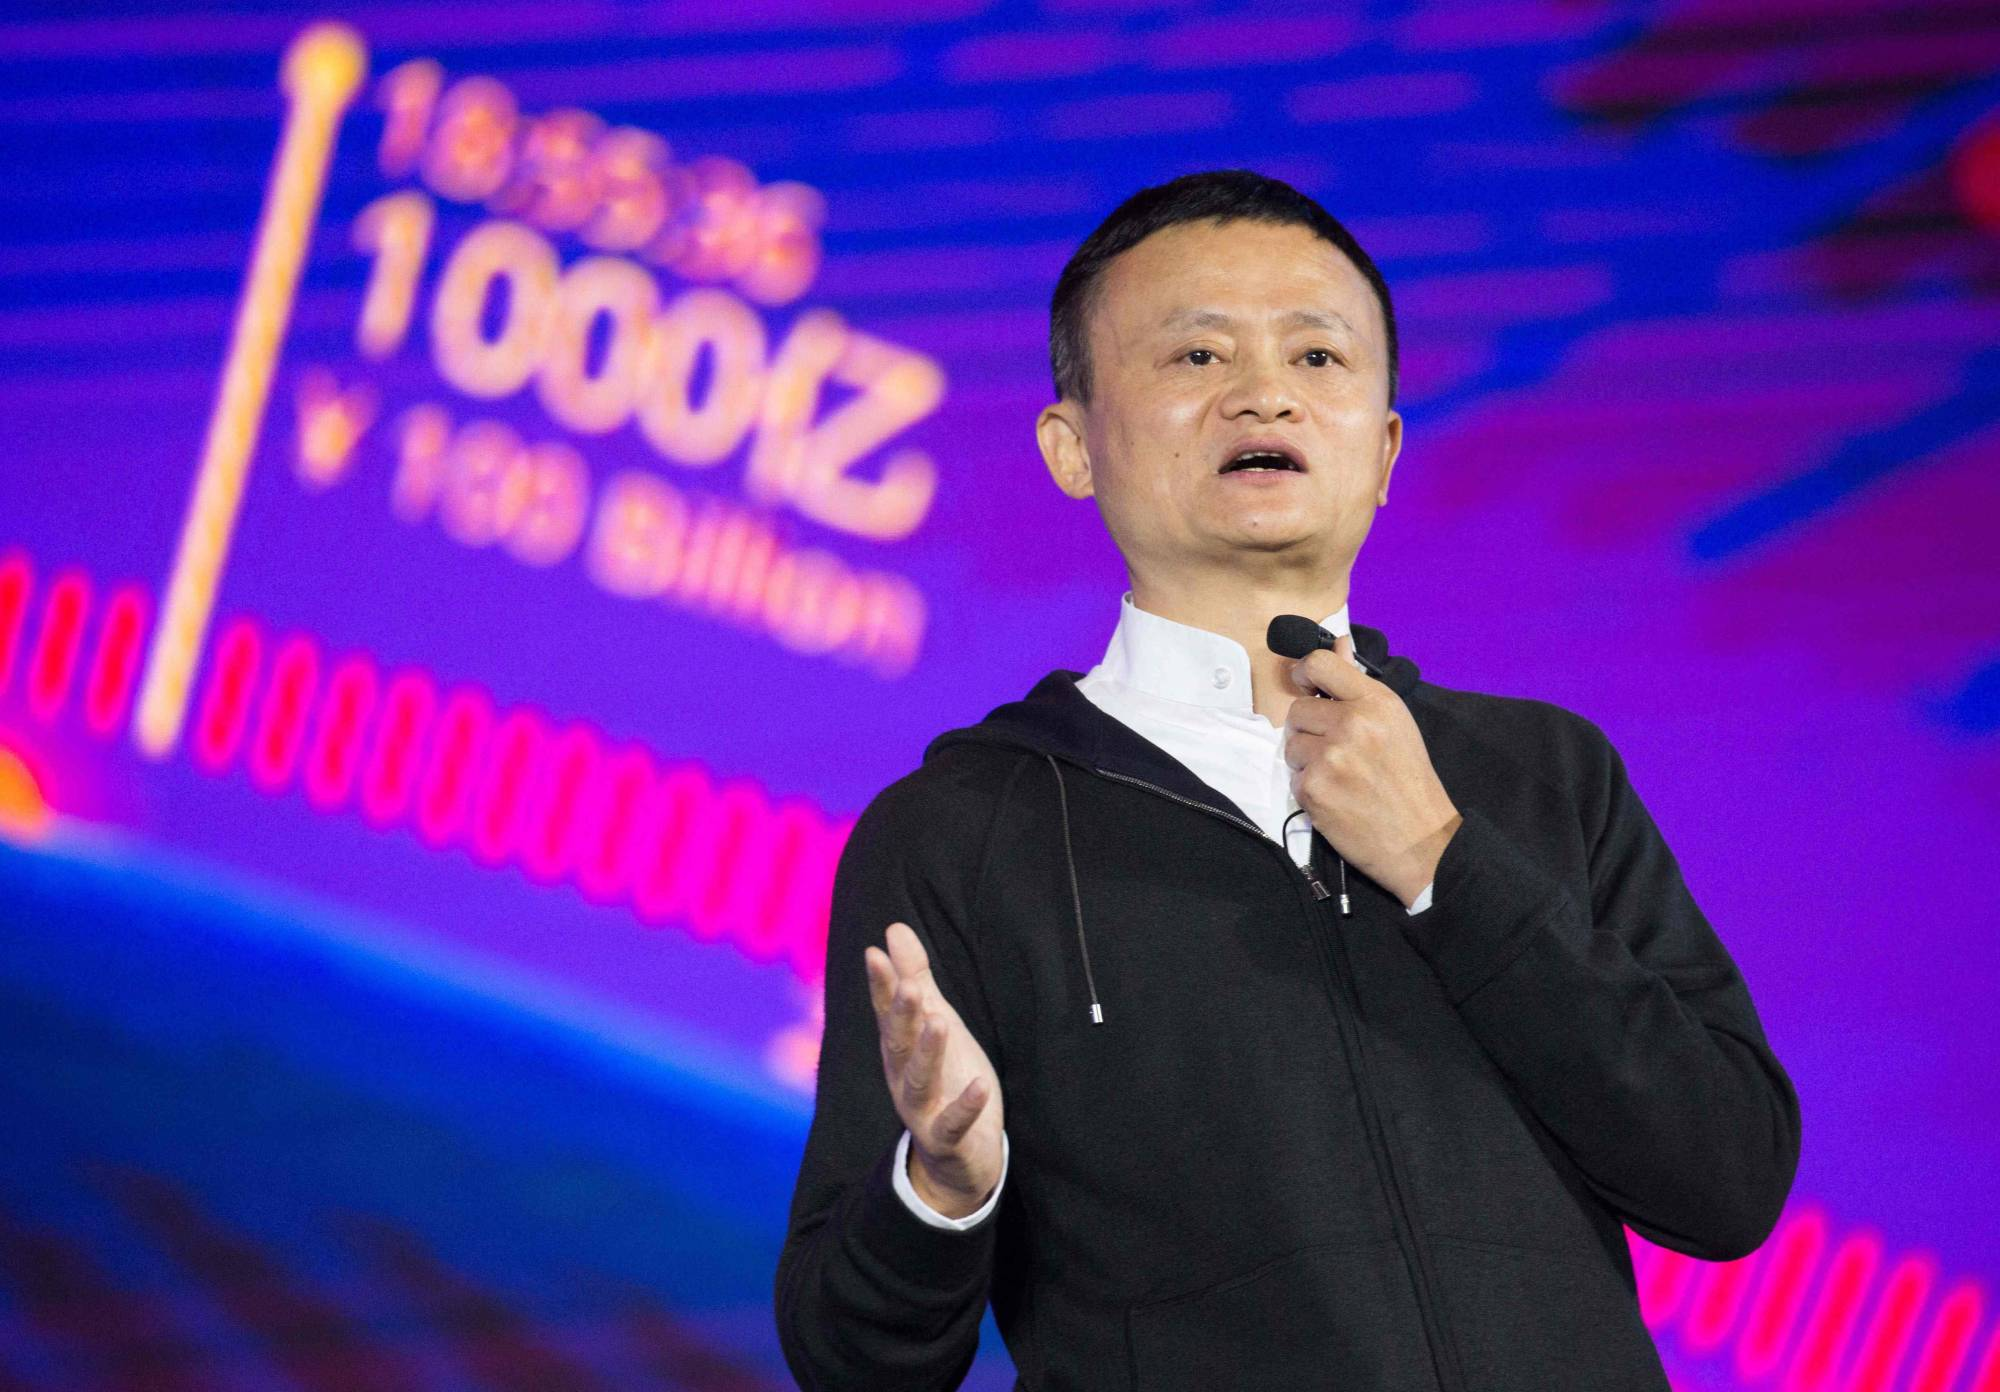 Alibaba chairman Jack Ma speaks during a gala in Shenzhen, in southern China's Guangdong province, in 2016. | AFP-JIJI